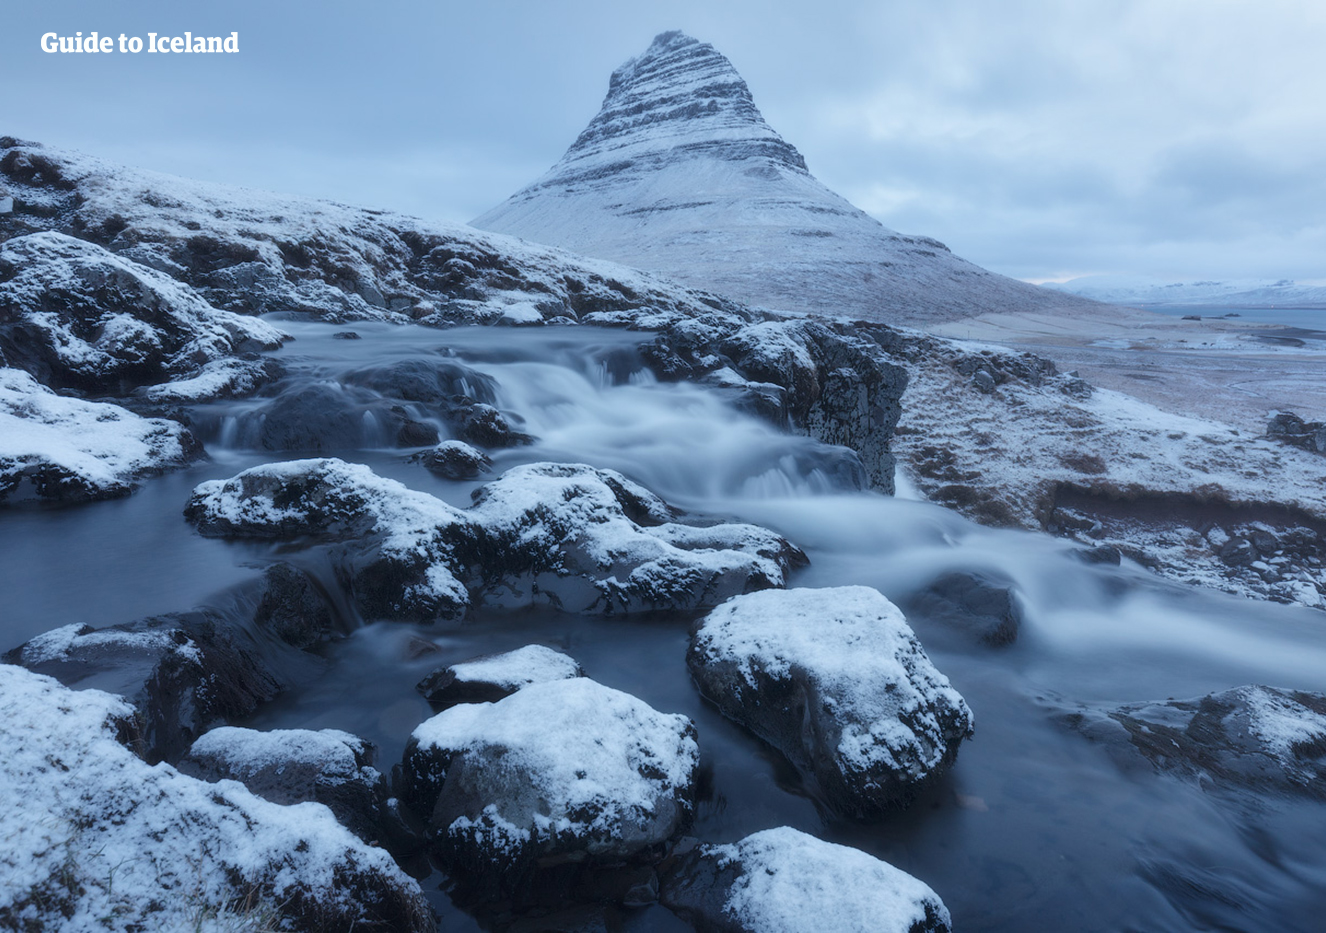 12 Day Winter Self Drive Tour | The Ring Road of Iceland with the Snaefellsnes Peninsula - day 11